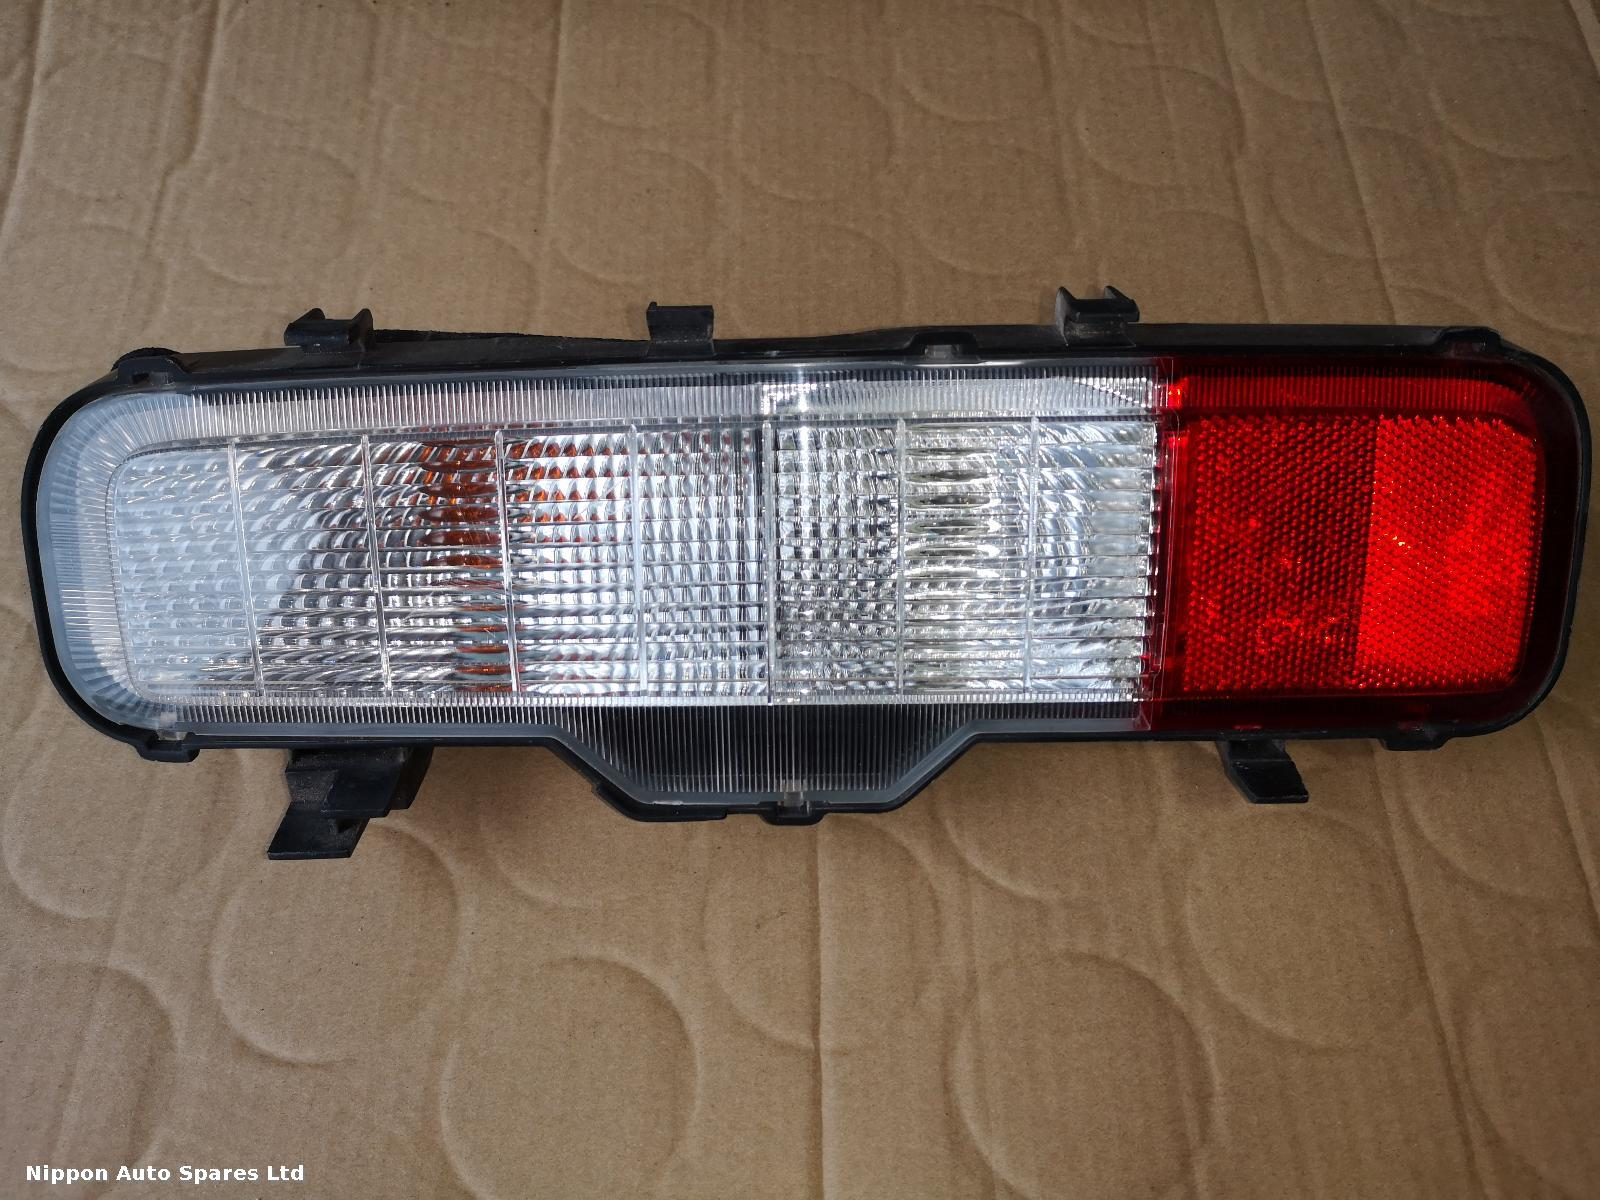 Nissan ELGRAND R Taillight PRE FACELIFT LOWER: 55114